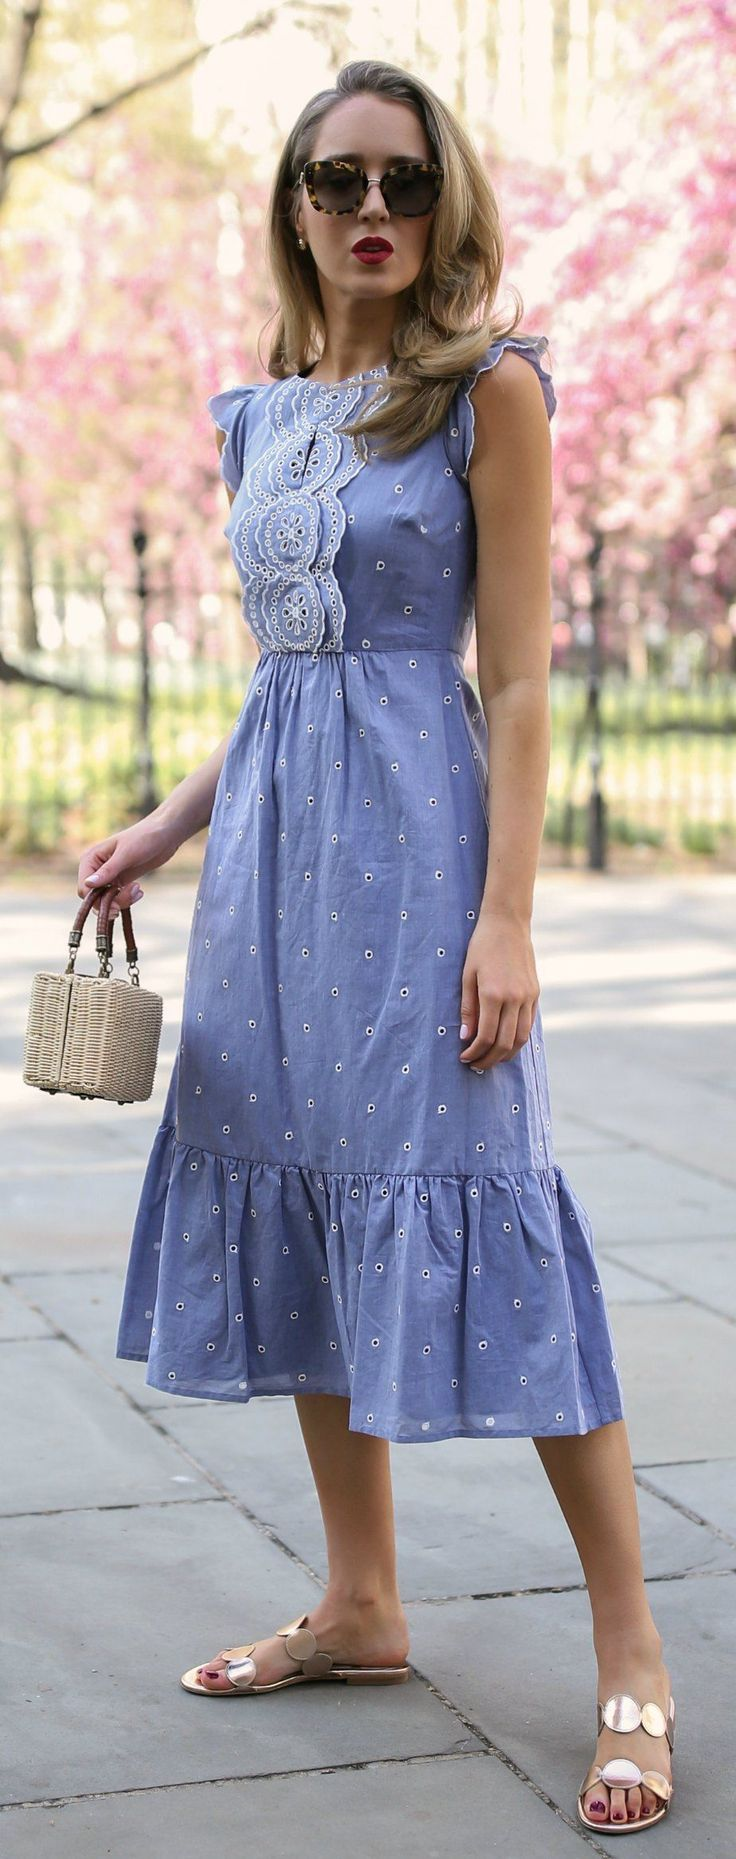 30 Dresses in 30 Days: Garden Party // Light blue contrast broderie ...